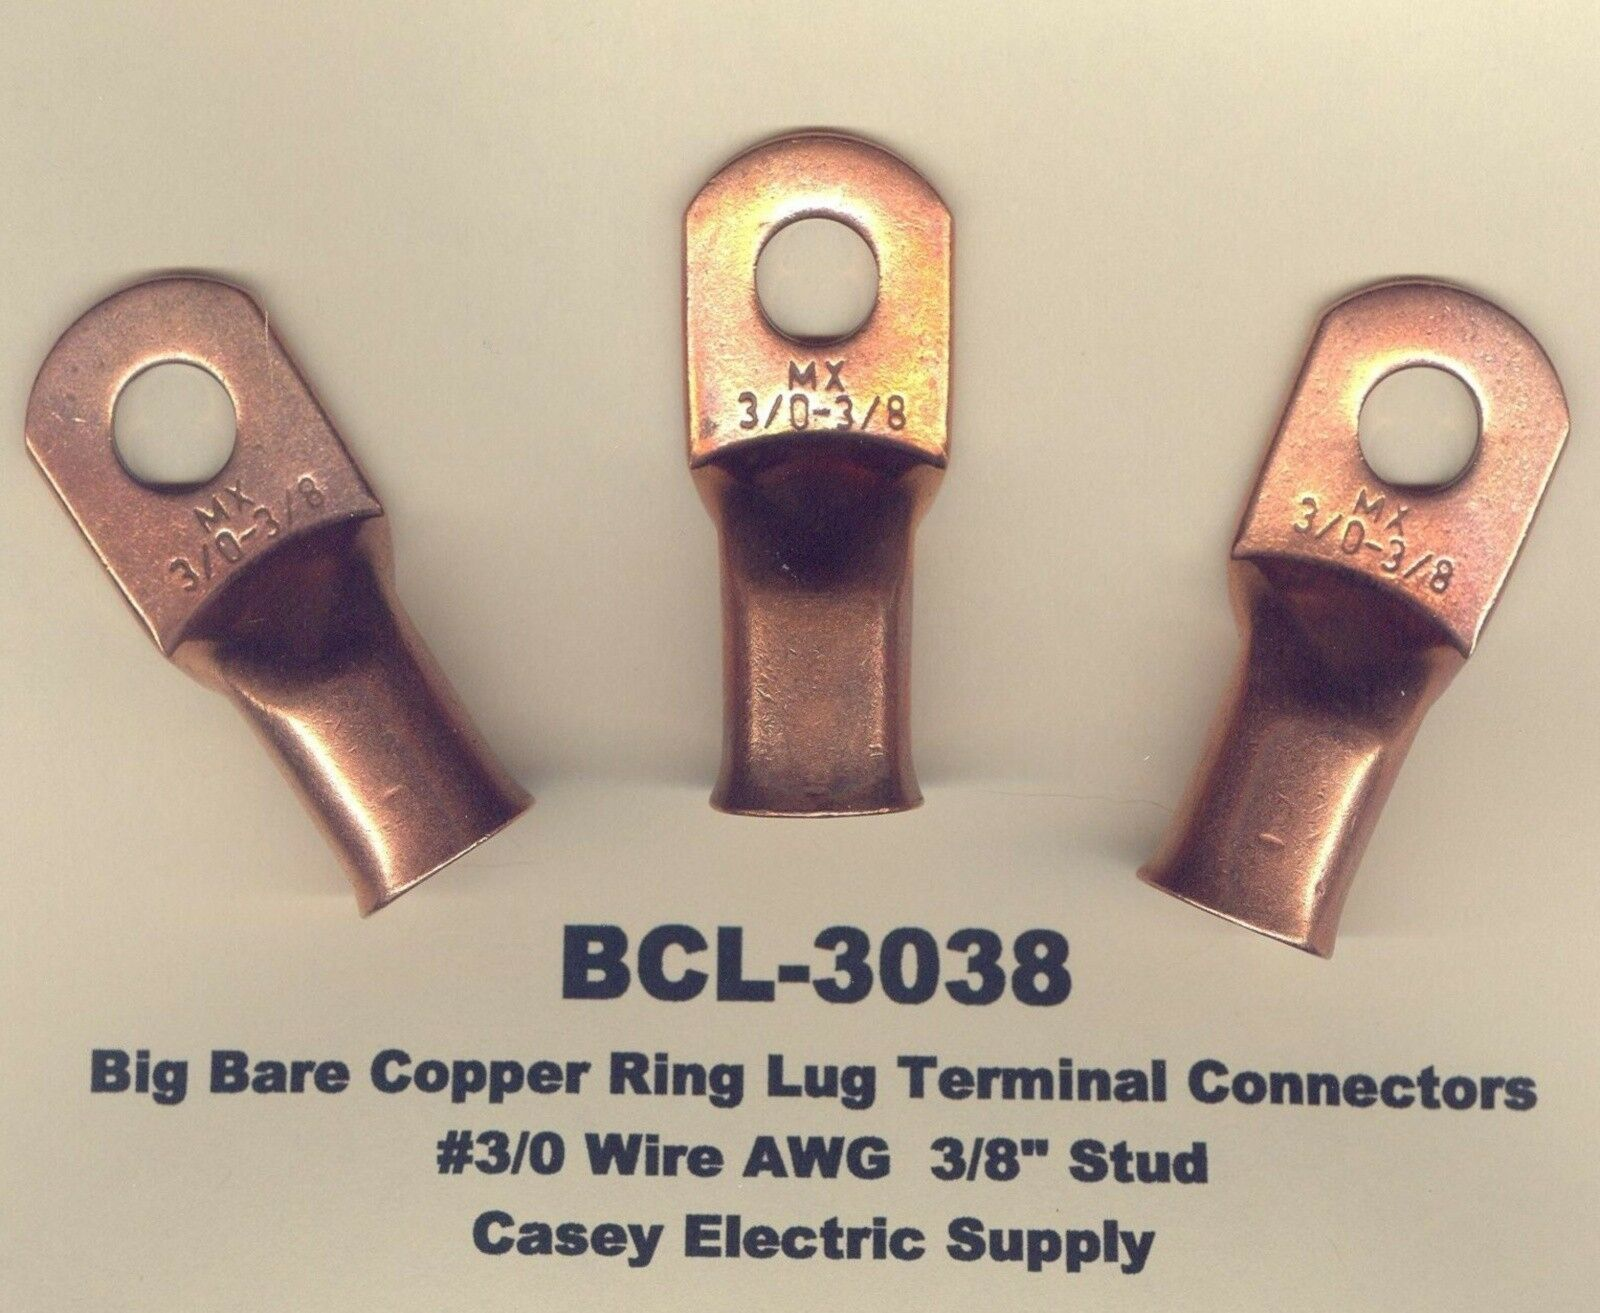 5 Big Bare Battery Copper Ring Lug Terminal Connector 3/0 Wire 3/8 ...